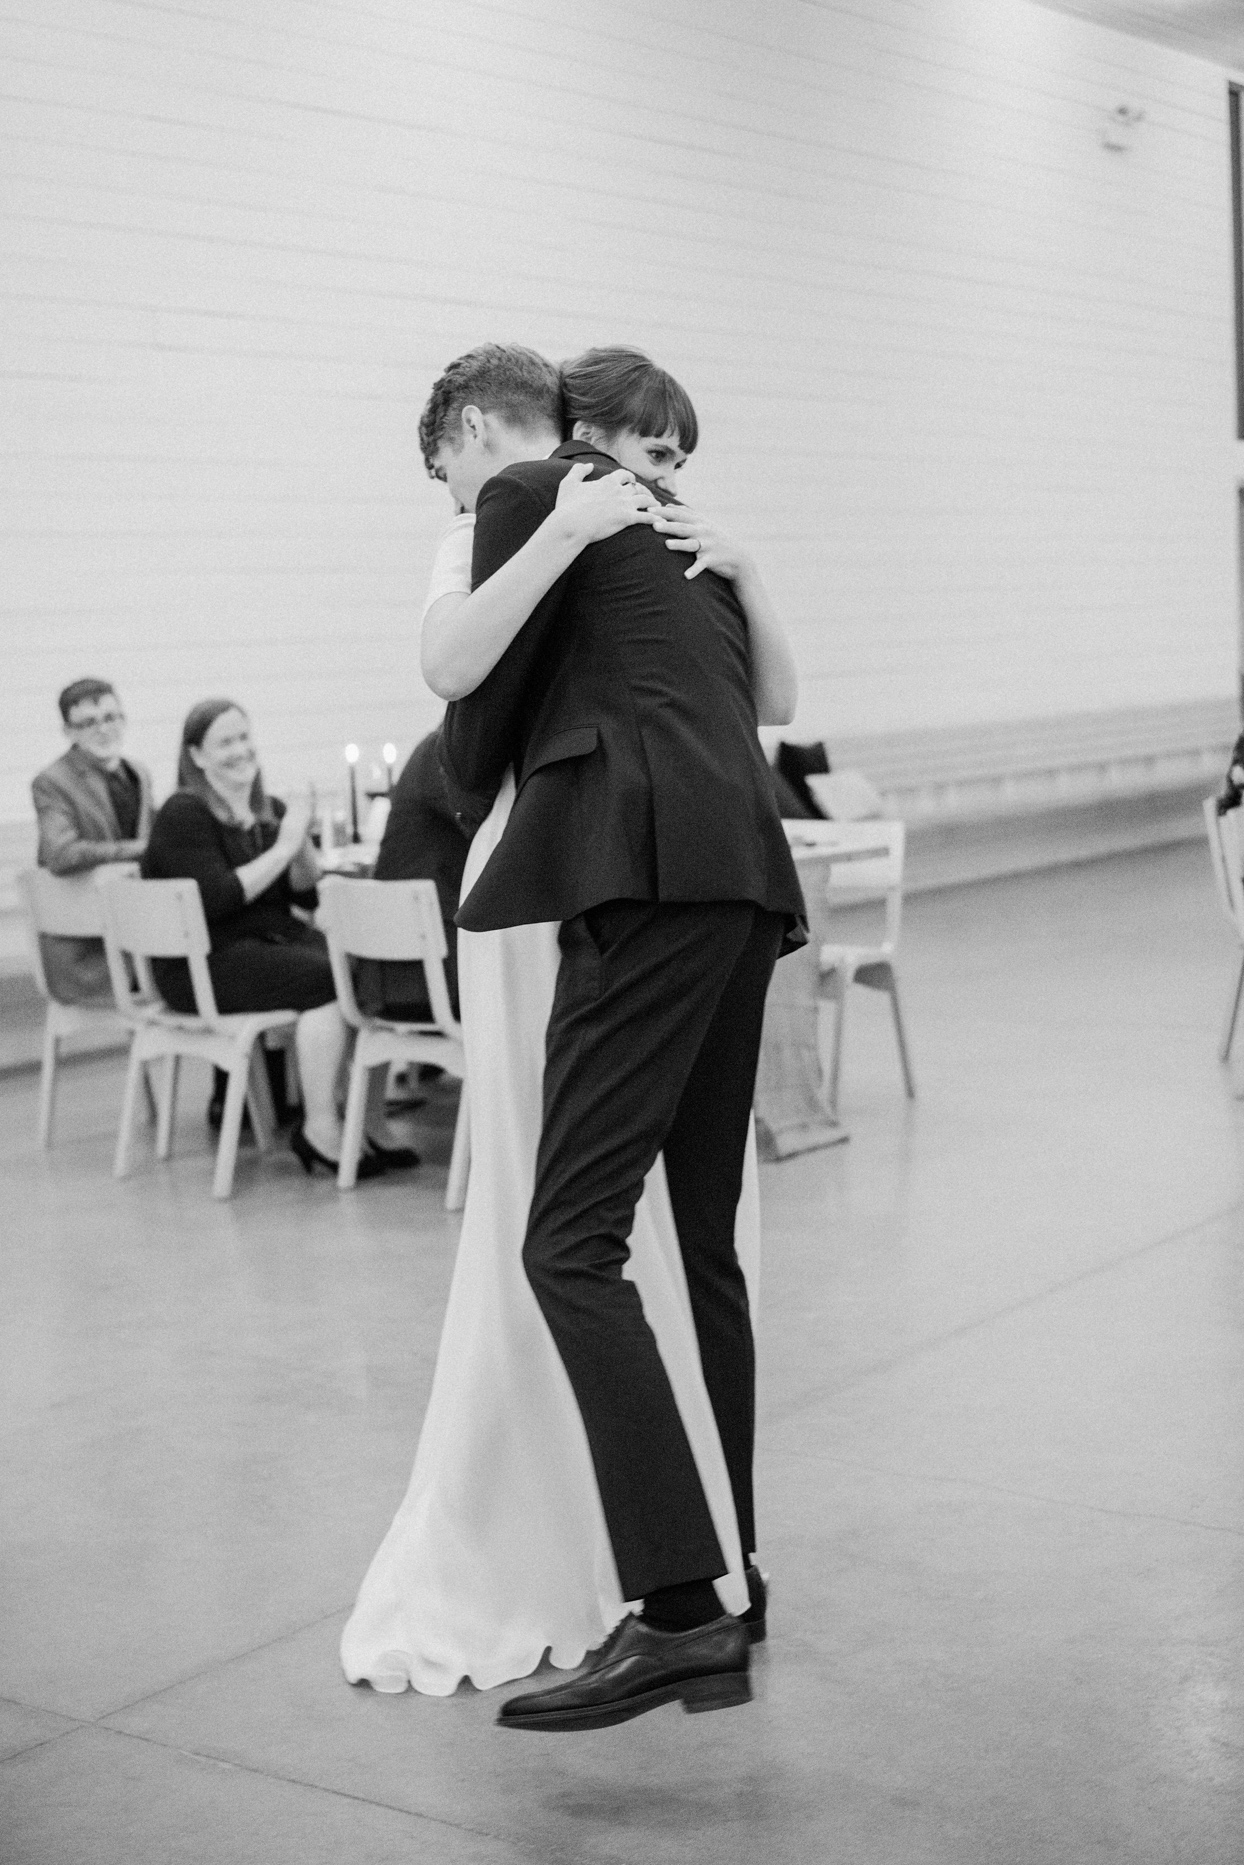 couple hugging tightly as they dance at wedding reception